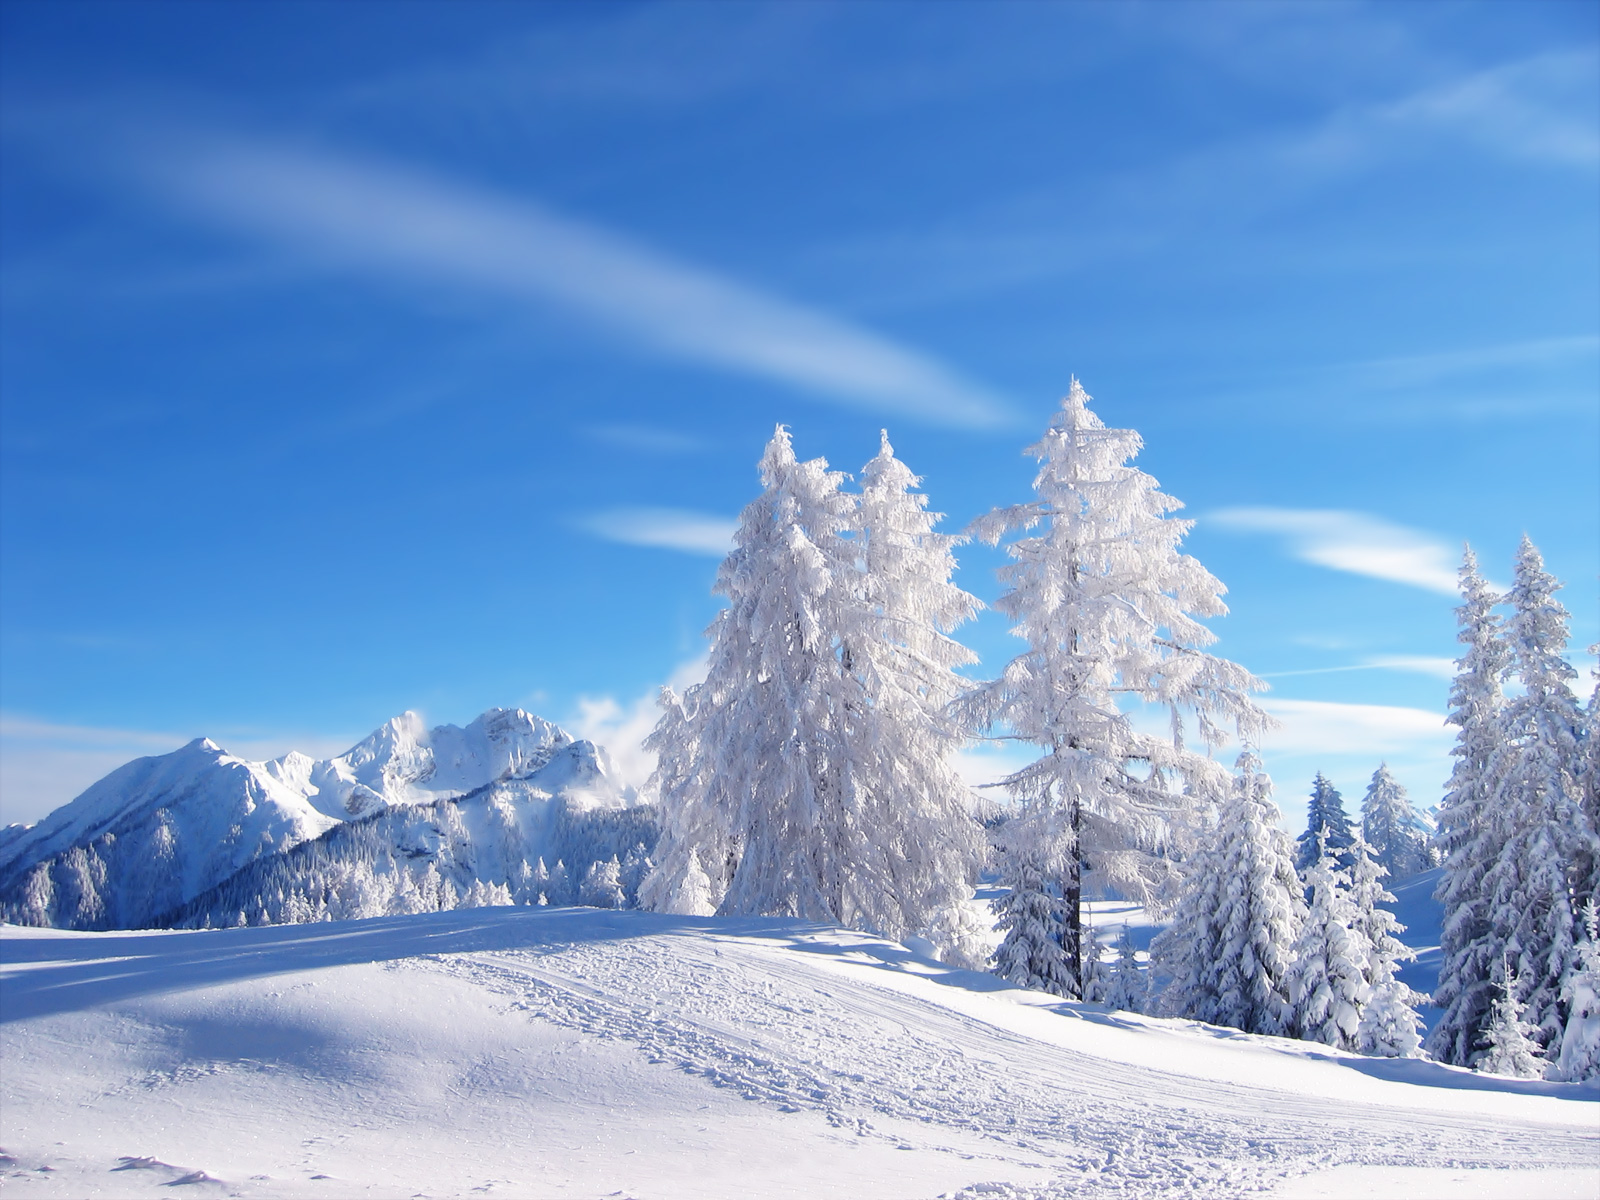 http://4.bp.blogspot.com/-6FpREWQtwTQ/Ti0T9aUKCkI/AAAAAAAAAhI/vgyV23mn9mc/s1600/Winter-Nature-Wallpapers.jpg